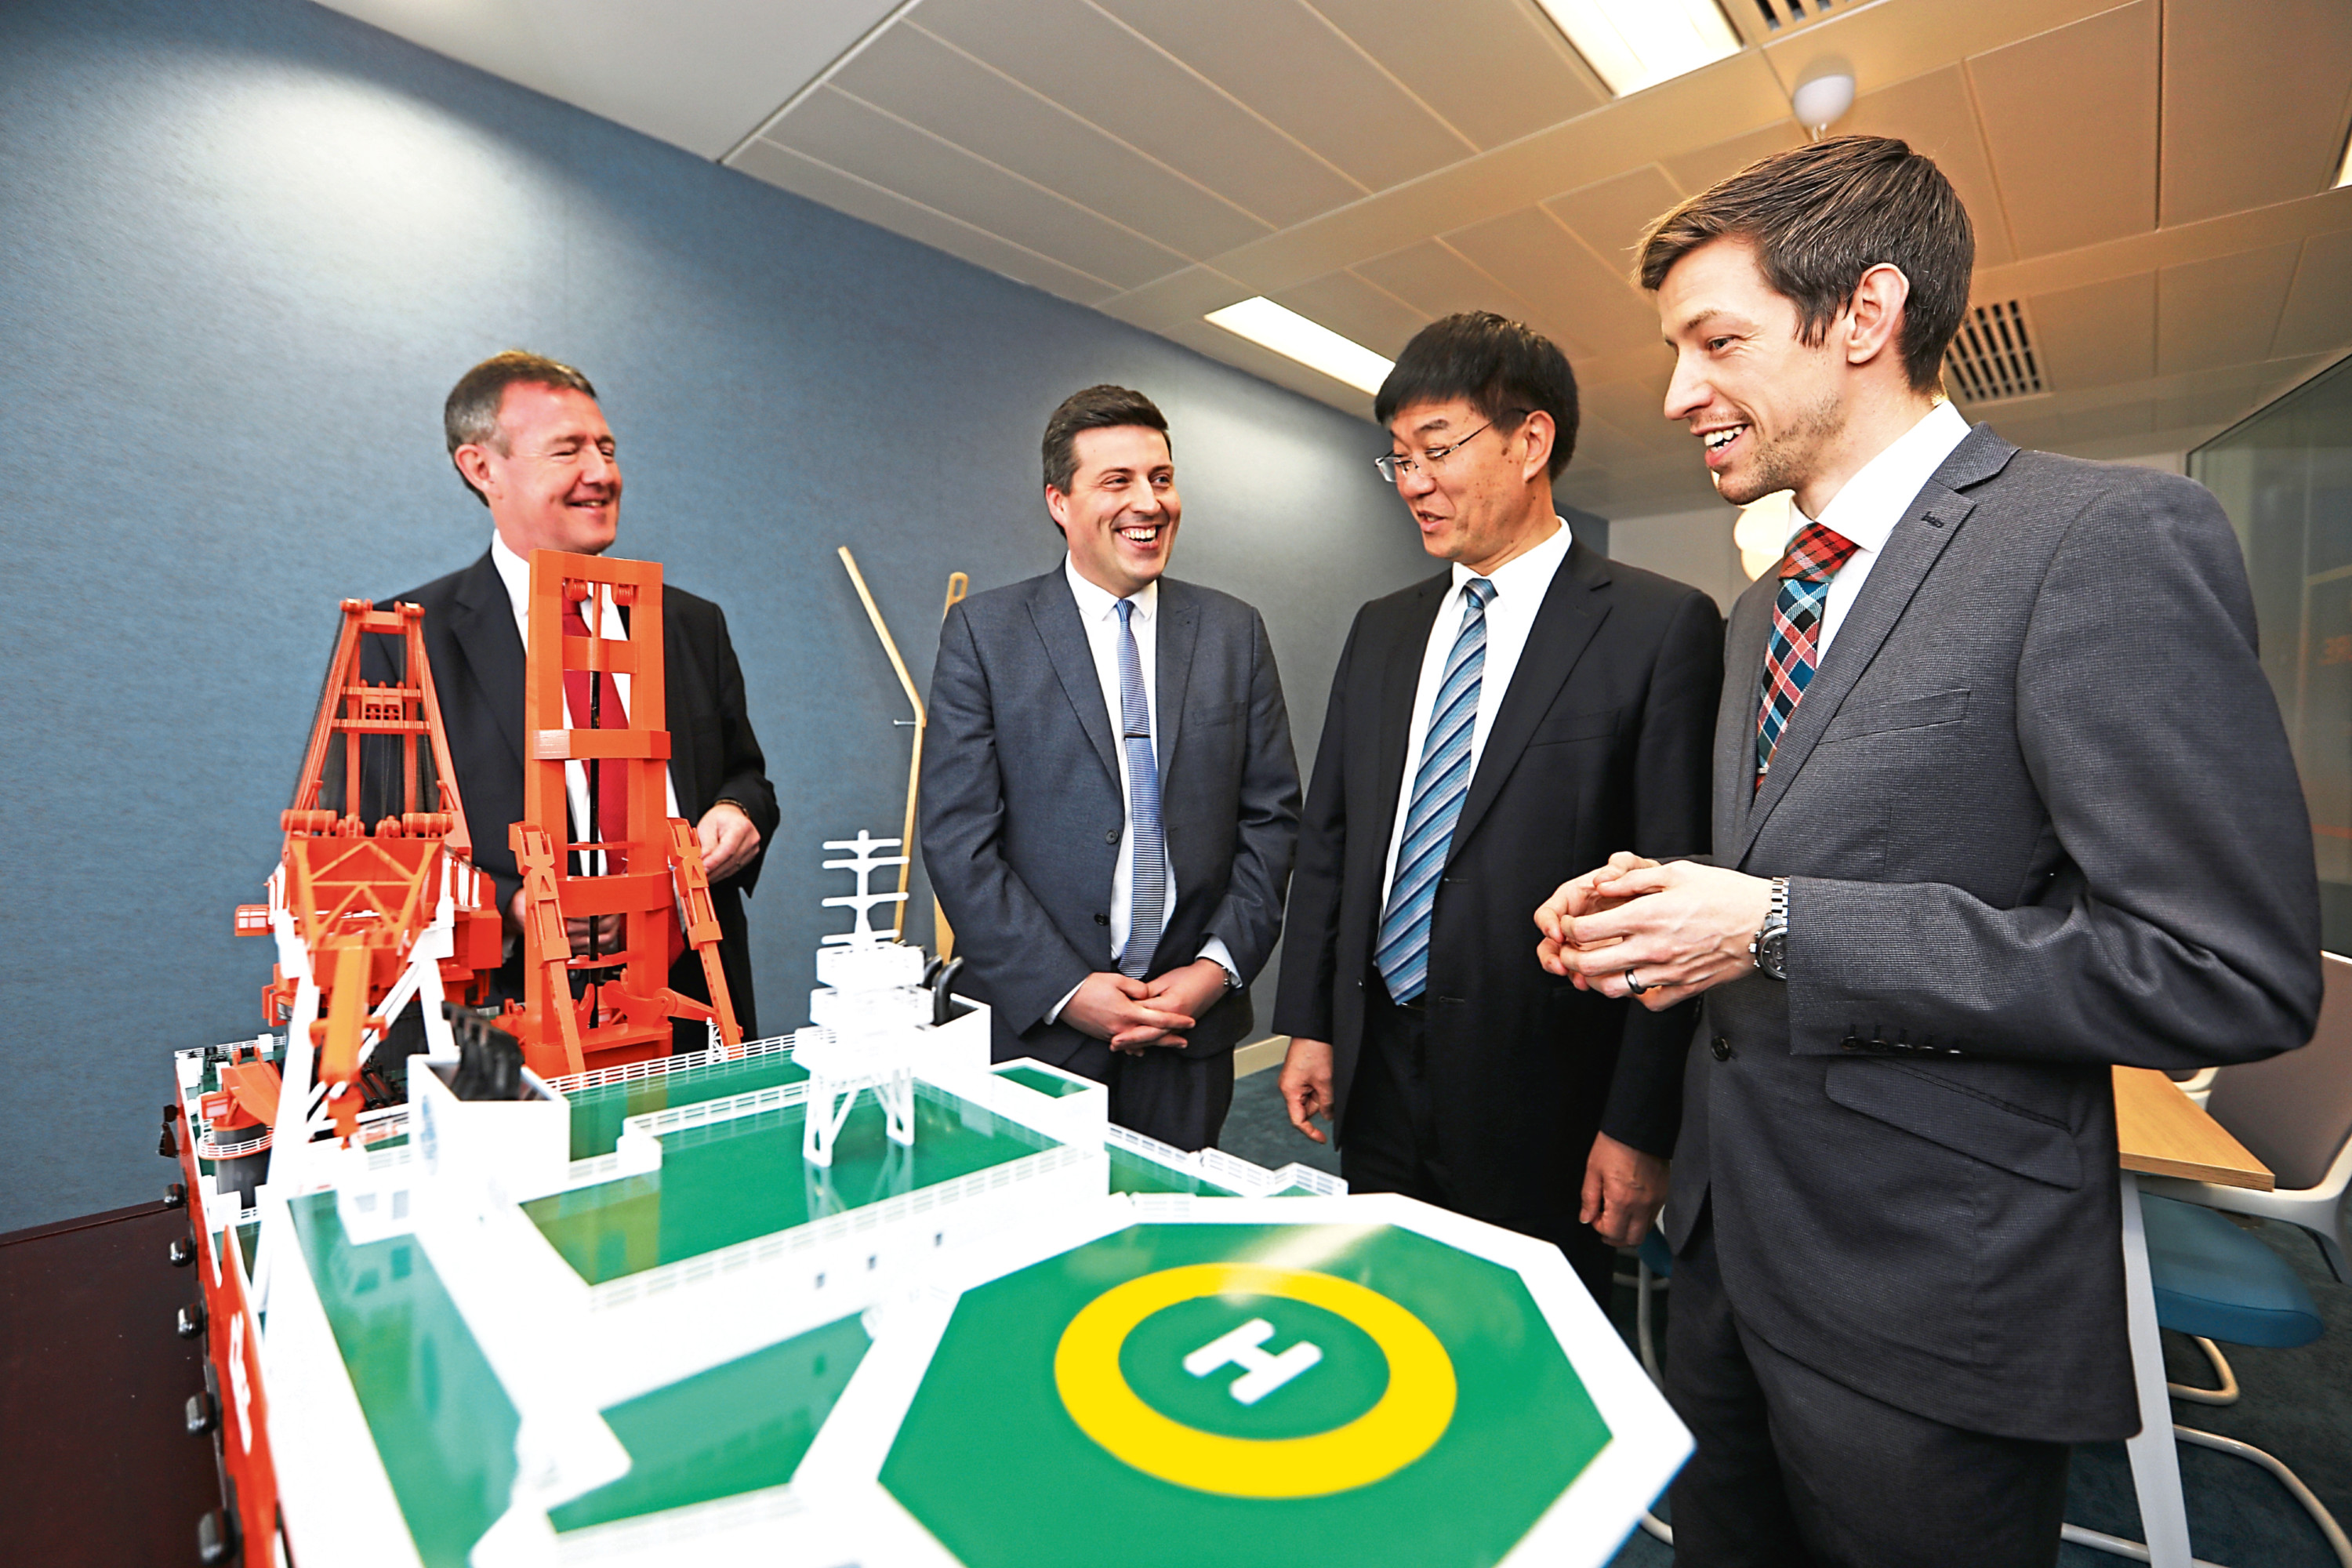 Dundee City Council leader John Alexander, right, with, from left, COES Caledonia director general, professor Norman McLennan, MSP Jamie Hepburn and COES president Hong Chong